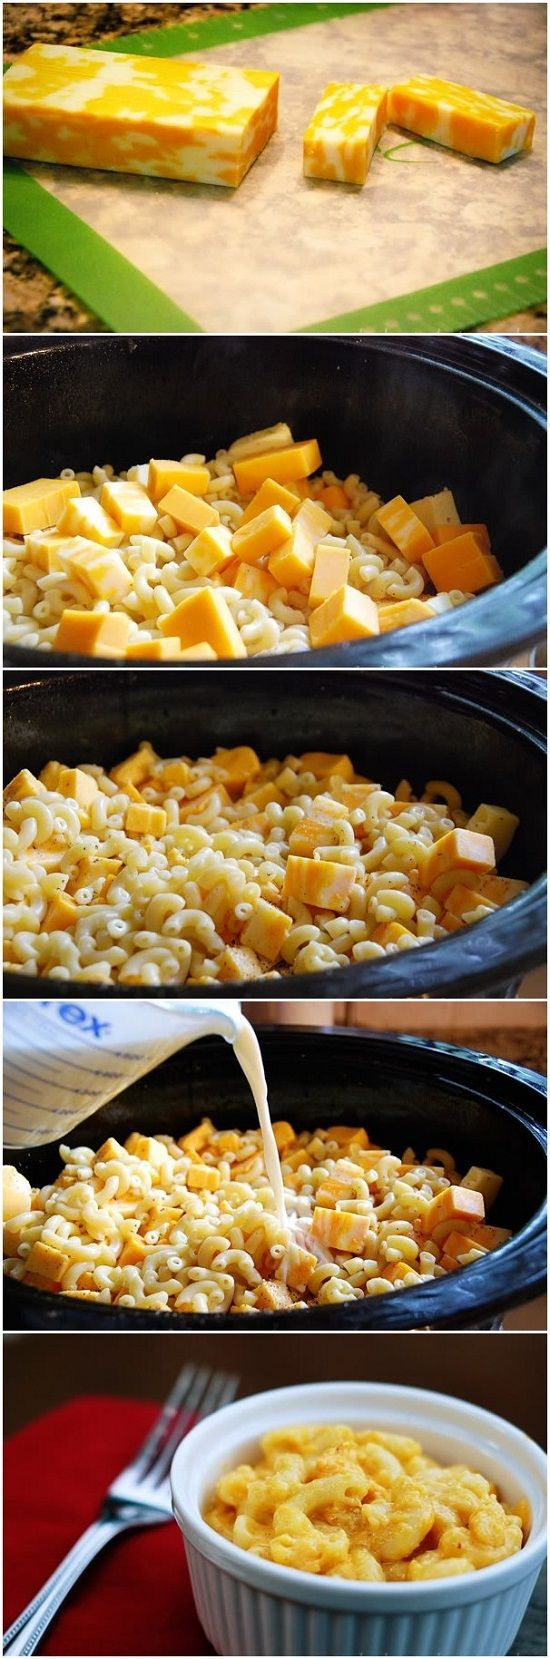 Crockpot Mac & Cheese .. i wonder if this will actually taste good.. if you put cooked mac in the crockpot and let it cook on low for 4 hrs w/ cheese cubes and milk, i would think the noodles would become overcooked.. but i am going to try it because my kids love mac n cheese! #recipes Recipes